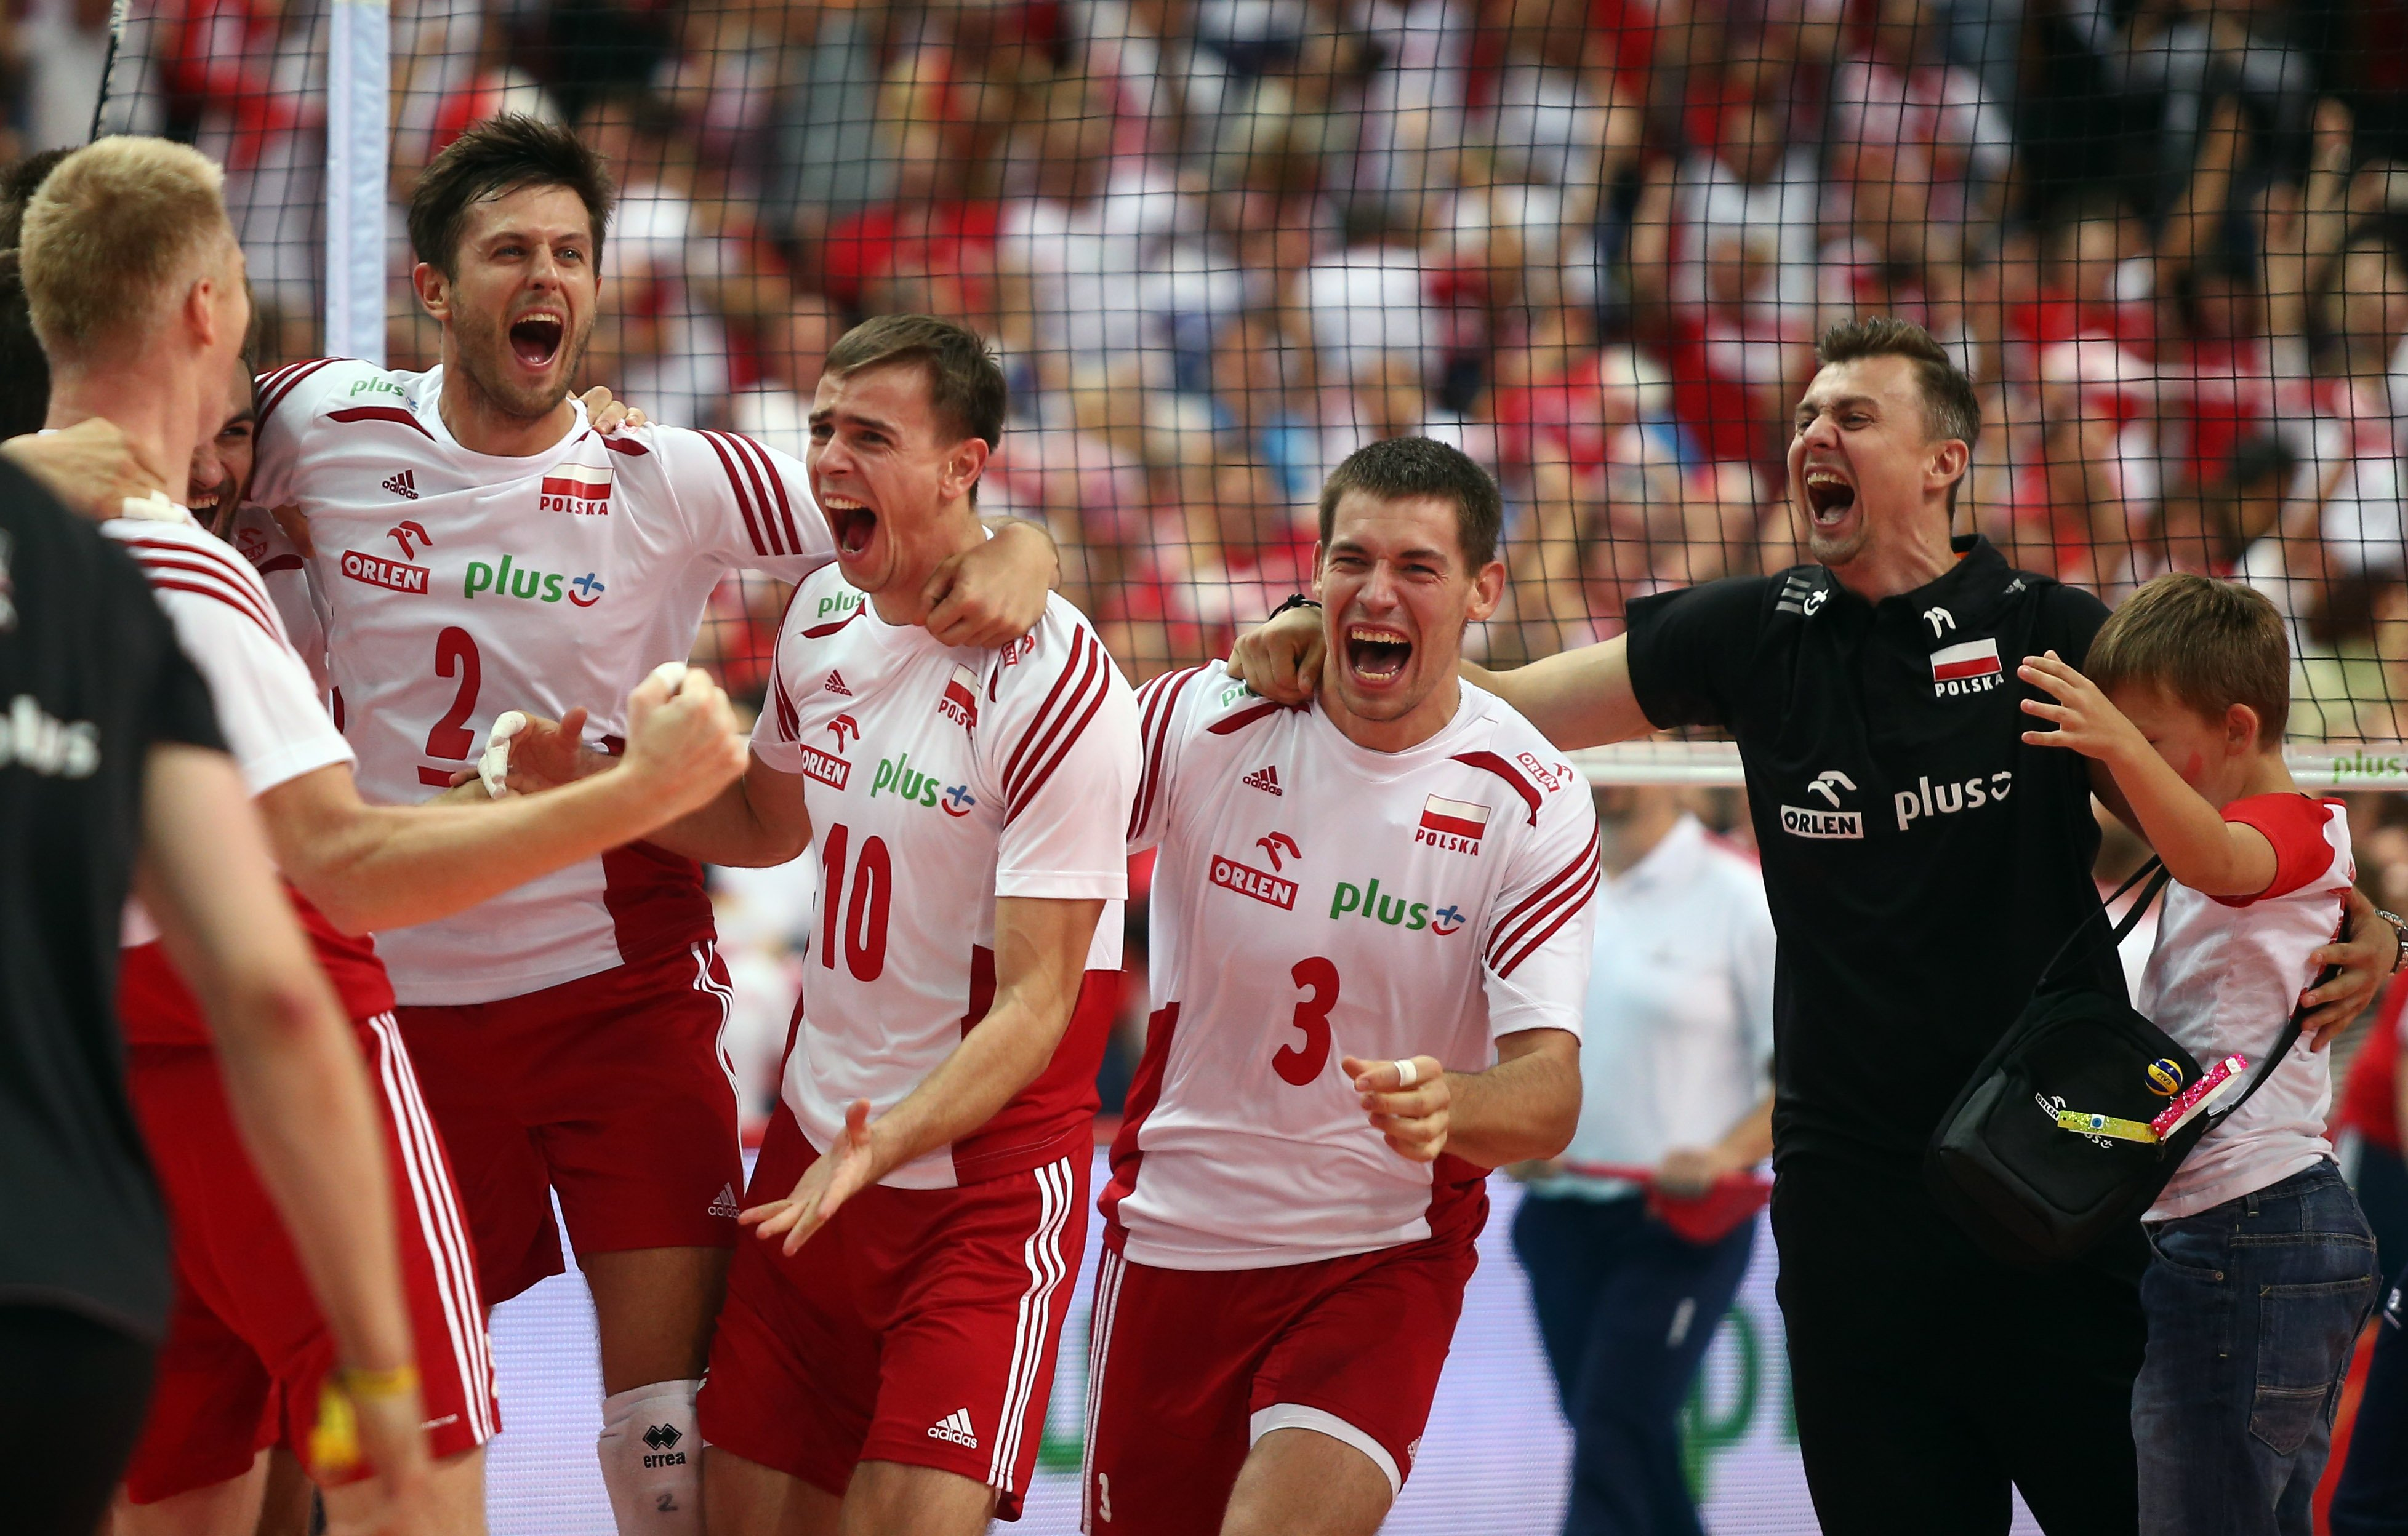 KATOWICE , HALA SPODEK 20.09.2014 SIATKOWKA MEZCZYZNI REPREZENTACJA FIVB MISTRZOSTWA SWIATA W SIATKOWCE MEZCZYZN 2014 RUNDA FINALOWA FINAL POLSKA - BRAZYLIA NZ RADOSC POLSKA ZWYCIESTWO MISTRZ SWIATA MICHAL WINIARSKI ( POLSKA ) MARIUSZ WLAZLY ( POLSKA ) DAWID KONARSKI ( POLSKA ) KRZYSZTOF IGNACZAK Z SYNEM FOT MICHAL NOWAK / NEWSPIX.PL KATOWICE , SPODEK HALL 20.09.2014 VOLLEYBALL MEN FIVB MEN'S VOLLEYBALL WORLD CHAMPIONSHIP POLAND 2014 FINAL ROUND THE FINAL GAME POLAND - BRASIL POLAND WON THE MATCH AND BECOME THE WORLD CHAMPION CELEBRATION POLAND WINNER MICHAL NOWAK / NEWSPIX.PL --- Newspix.pl *** Local Caption *** www.newspix.pl mail us: info@newspix.pl call us: 0048 022 23 22 222 --- Polish Picture Agency by Ringier Axel Springer Poland